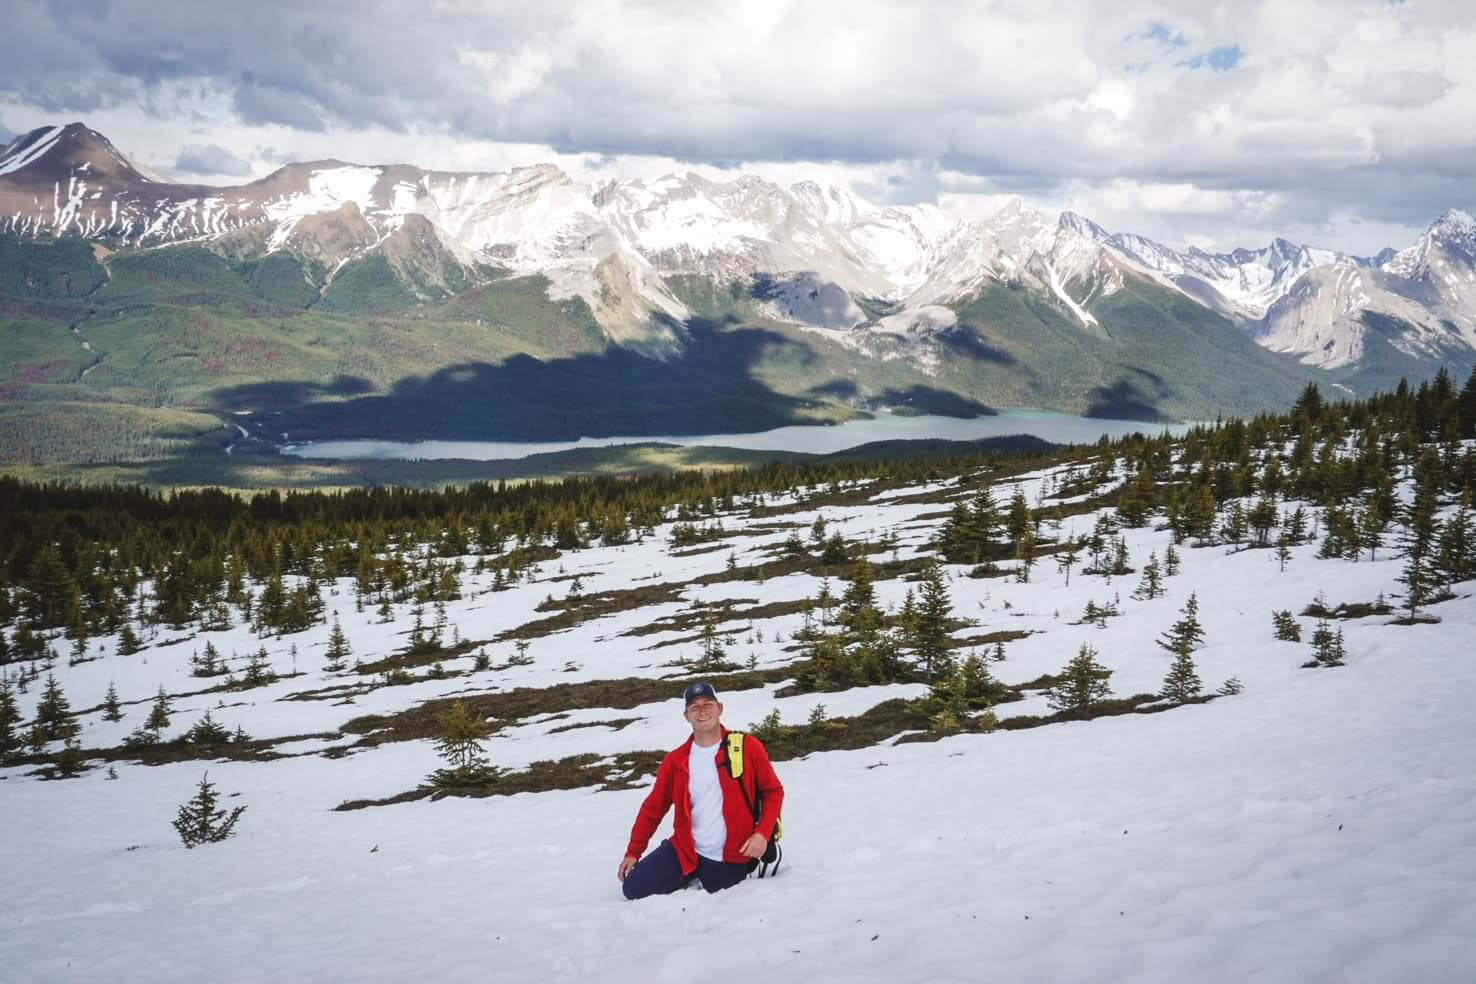 Western Canada Road Trip from Calgary to Vancouver - Bald Hills Hike in Jasper